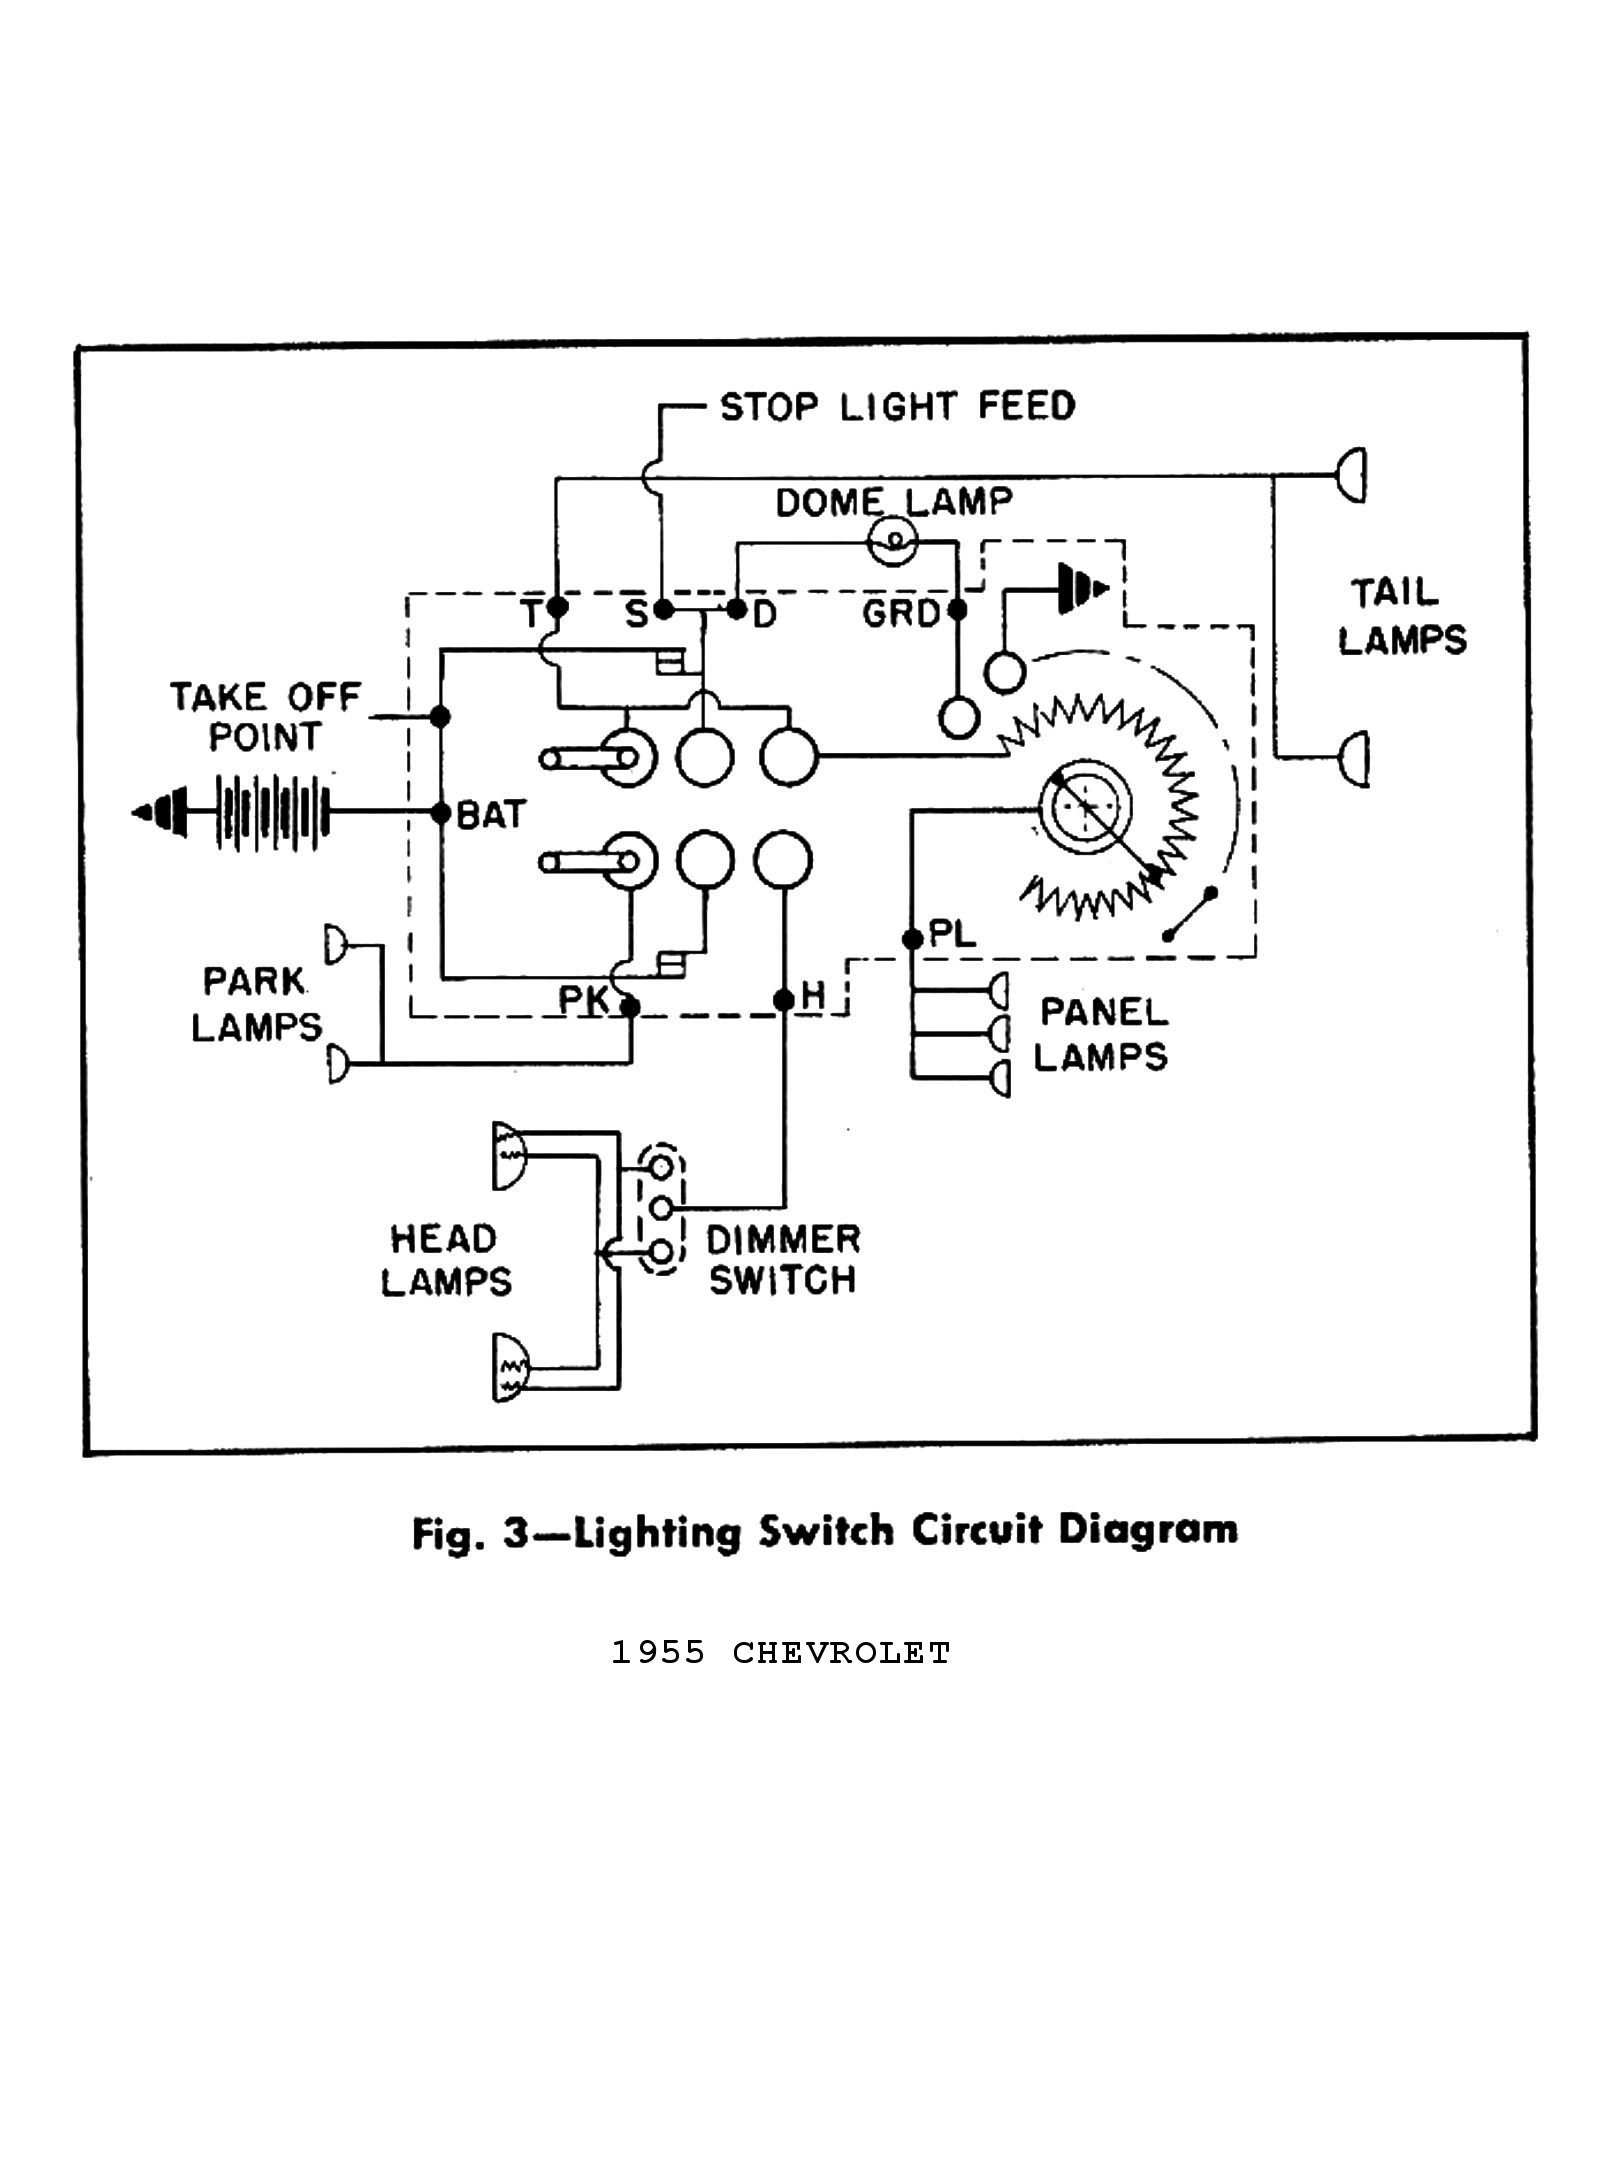 55 chevy truck wiring diagram images chevy steering column wiring 55 chevy truck wiring diagram images chevy steering column wiring diagram on 55 color wiring diagram besides 55 chevy headlight switch as well 1955 chevy